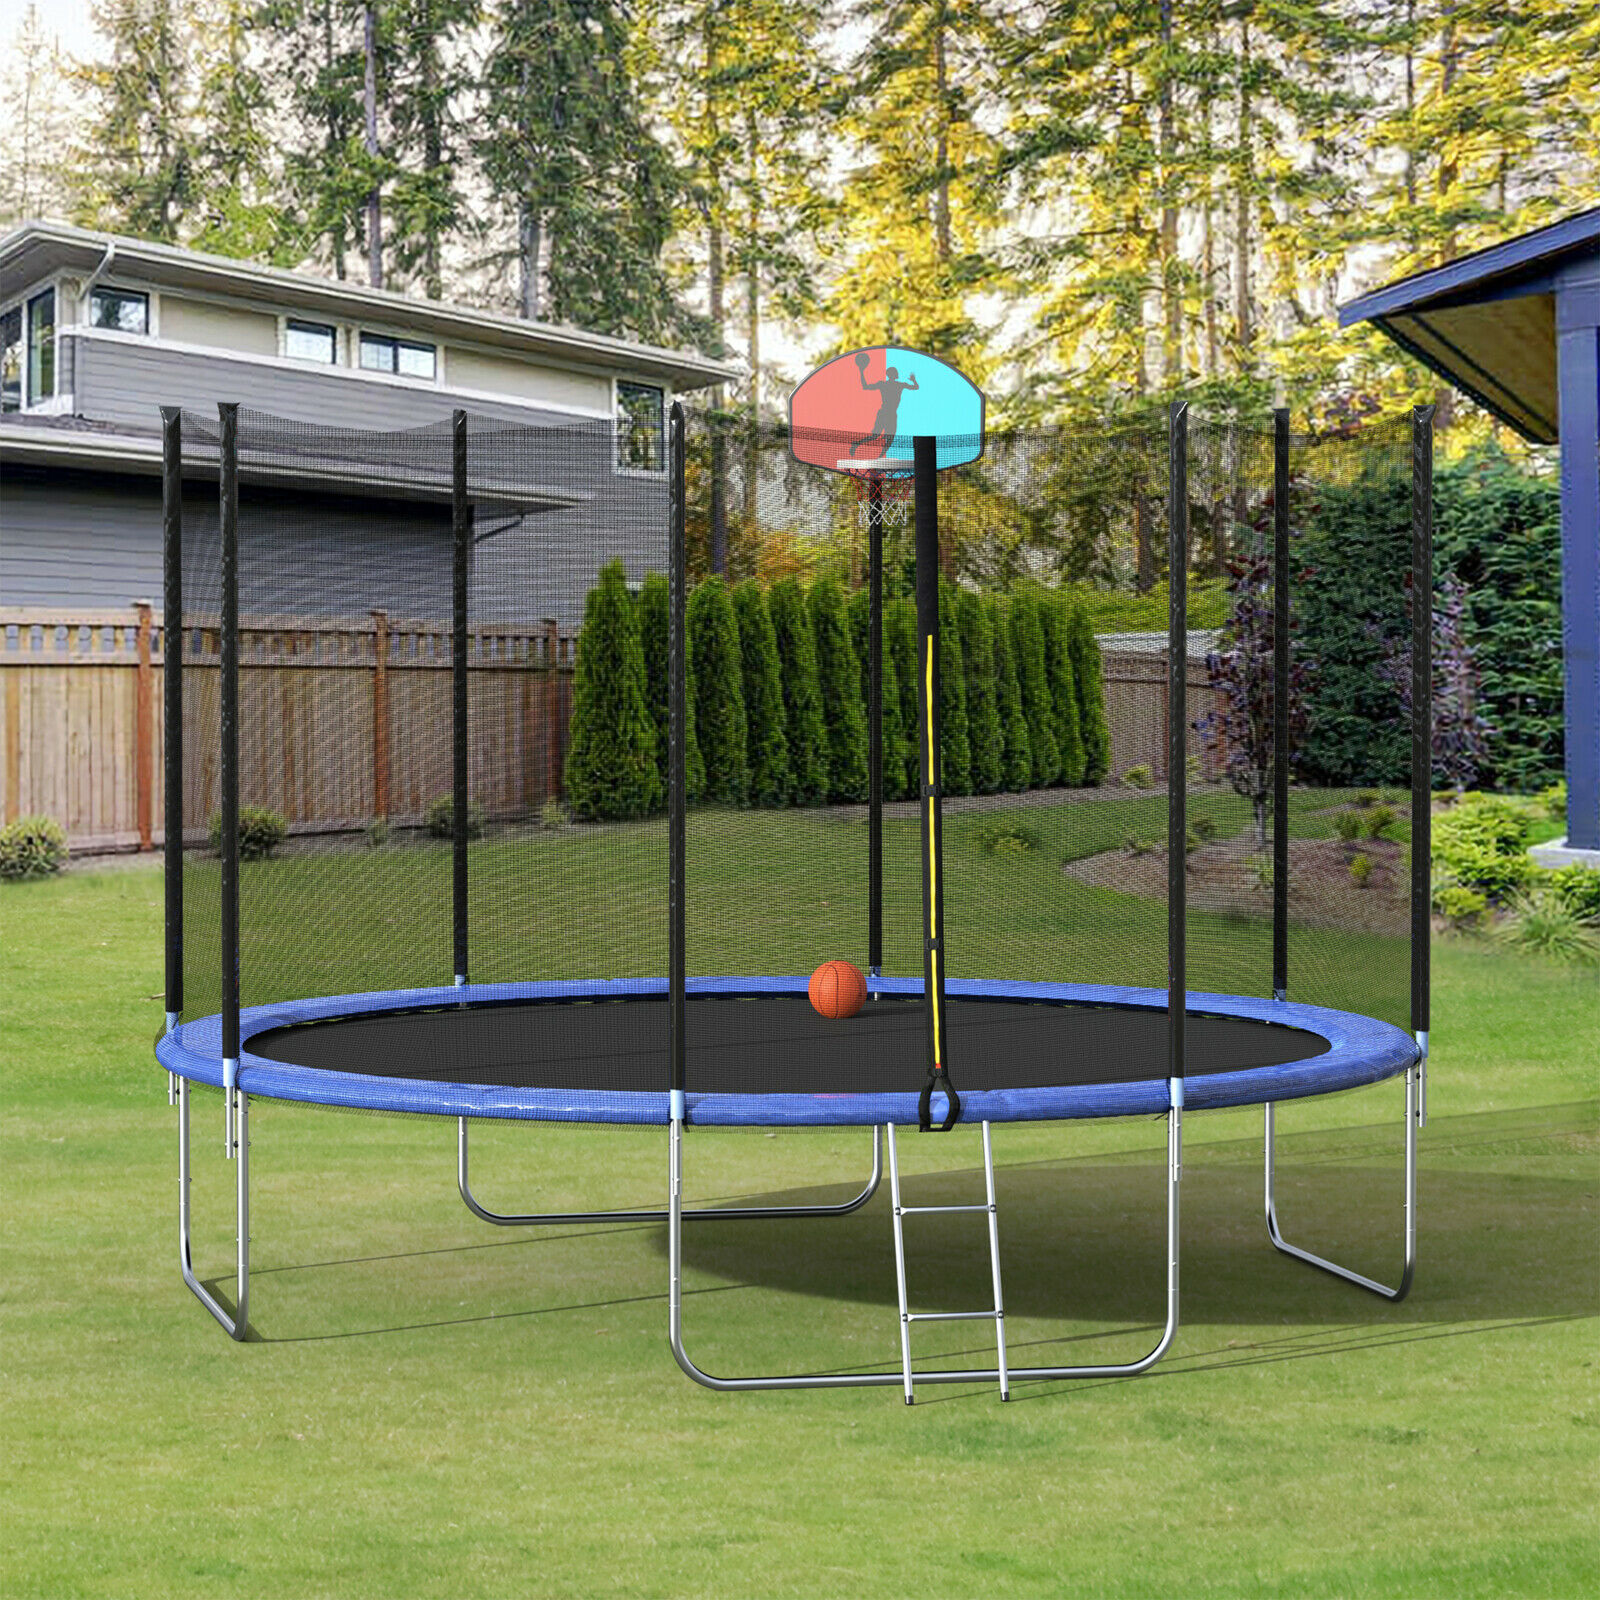 12 trampoline with basketball hoop and enclosure